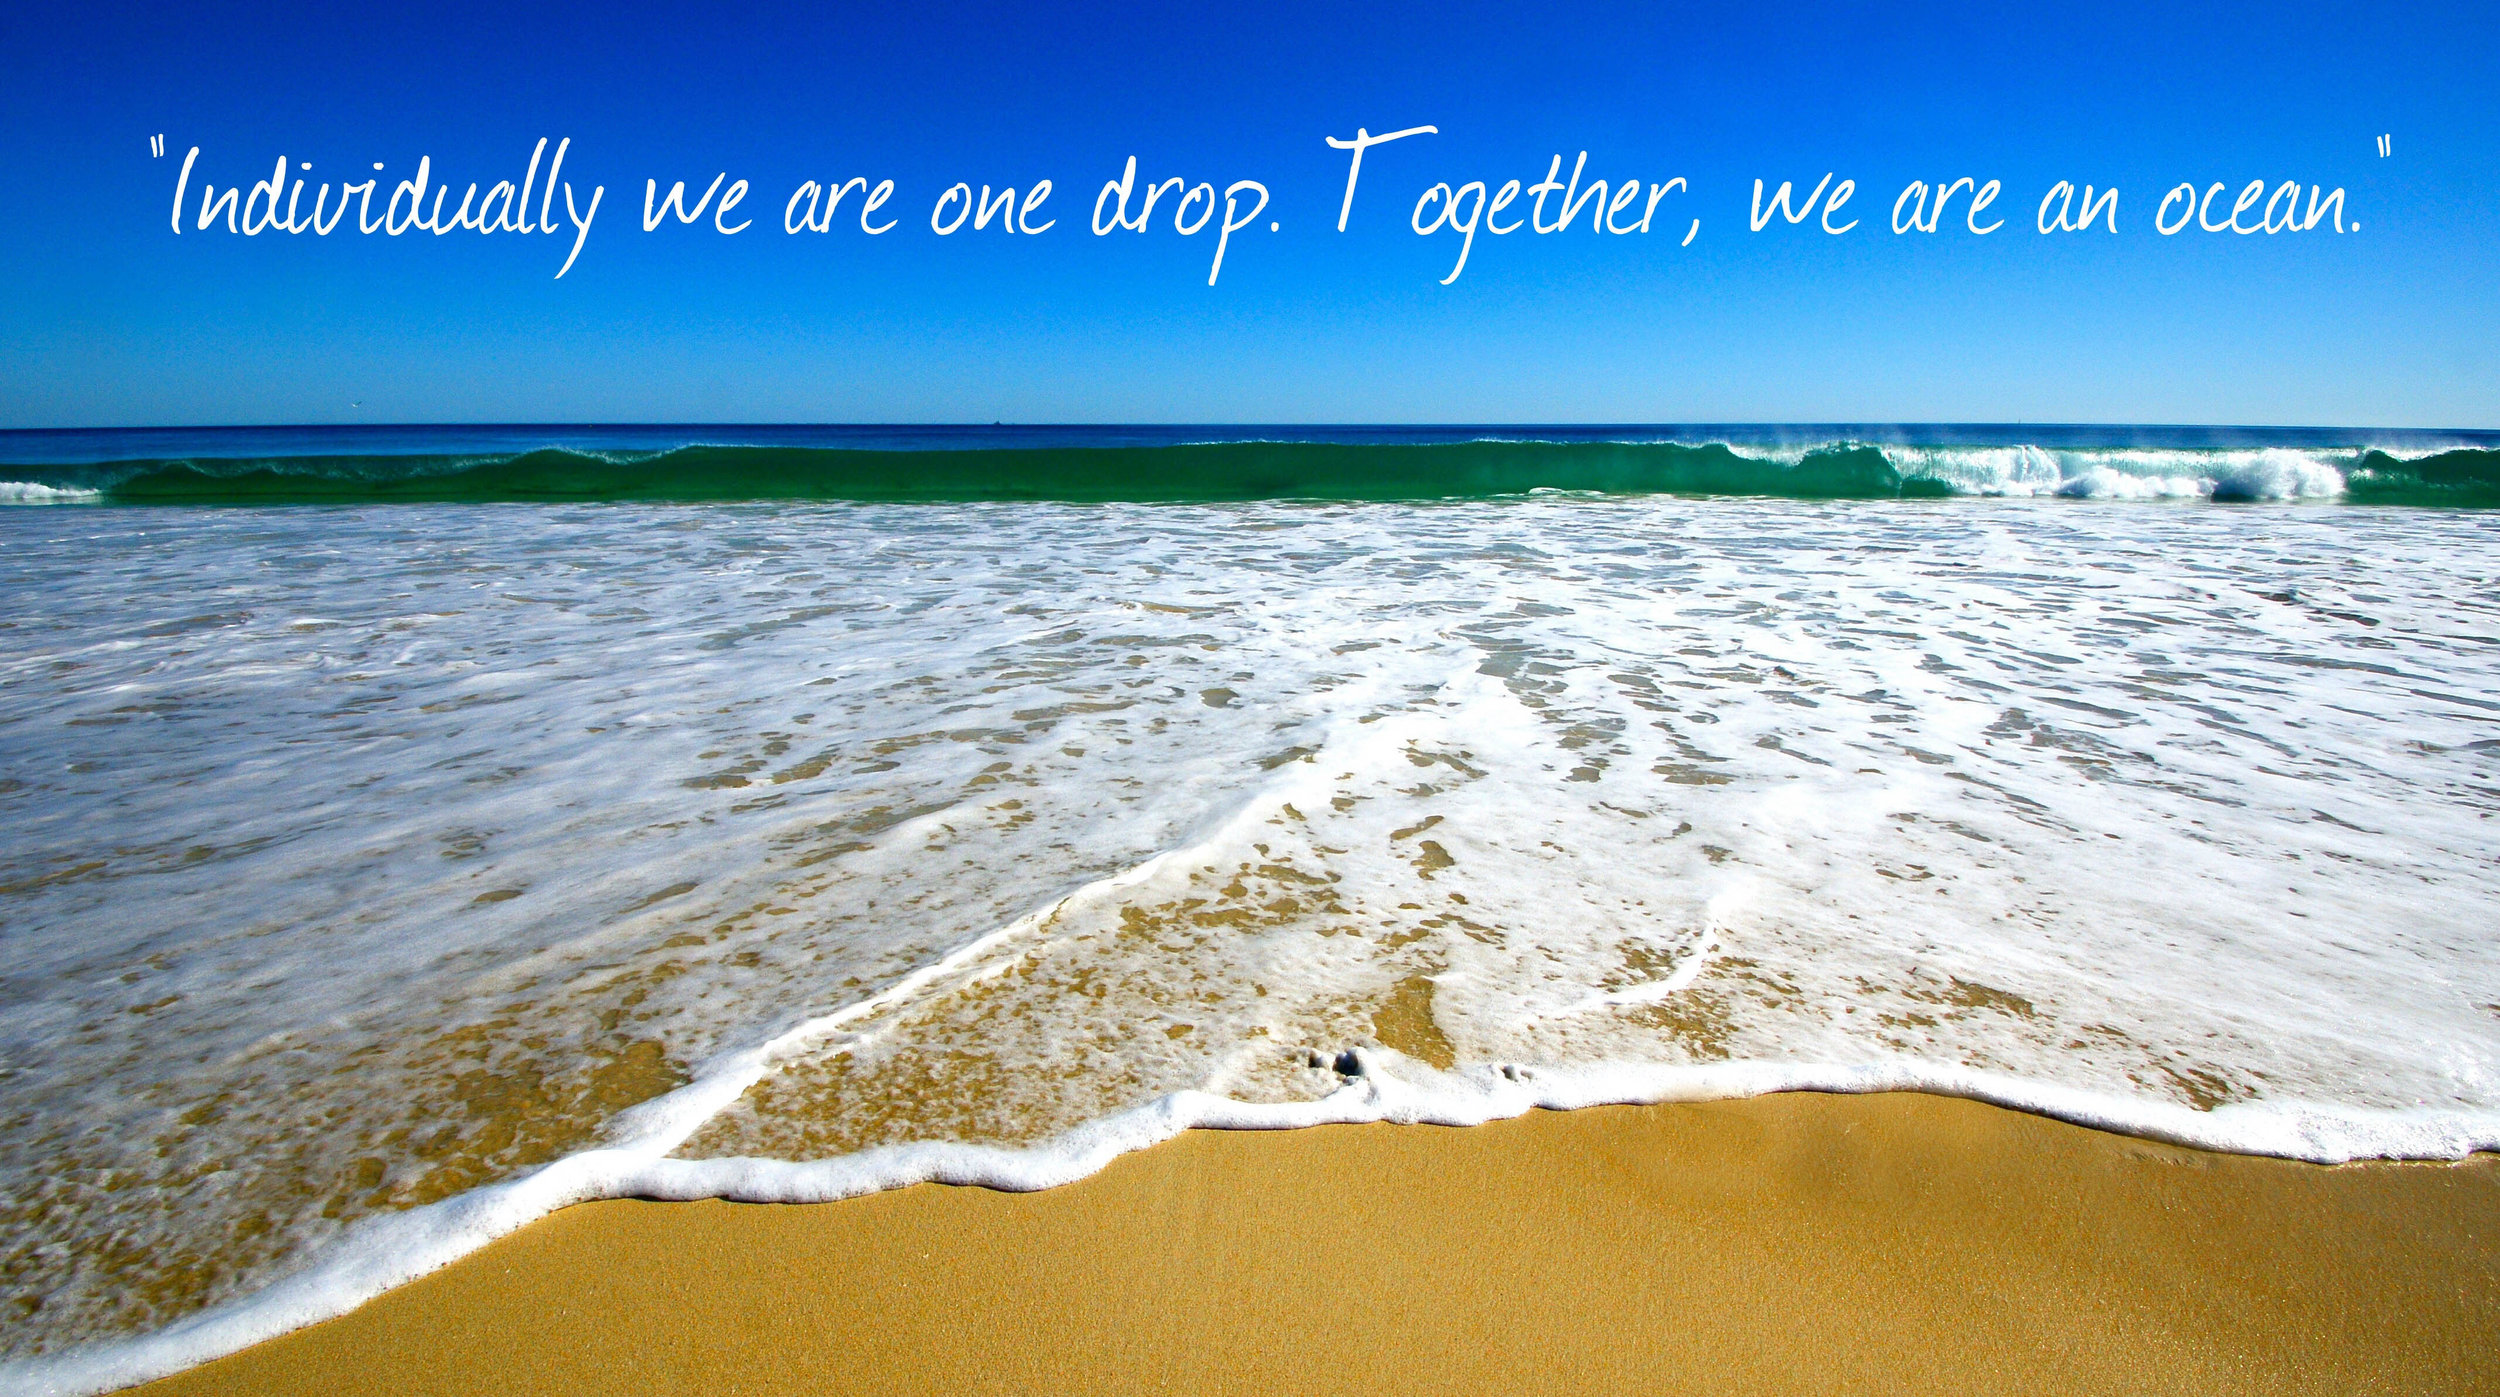 together we are an ocean quote.jpg